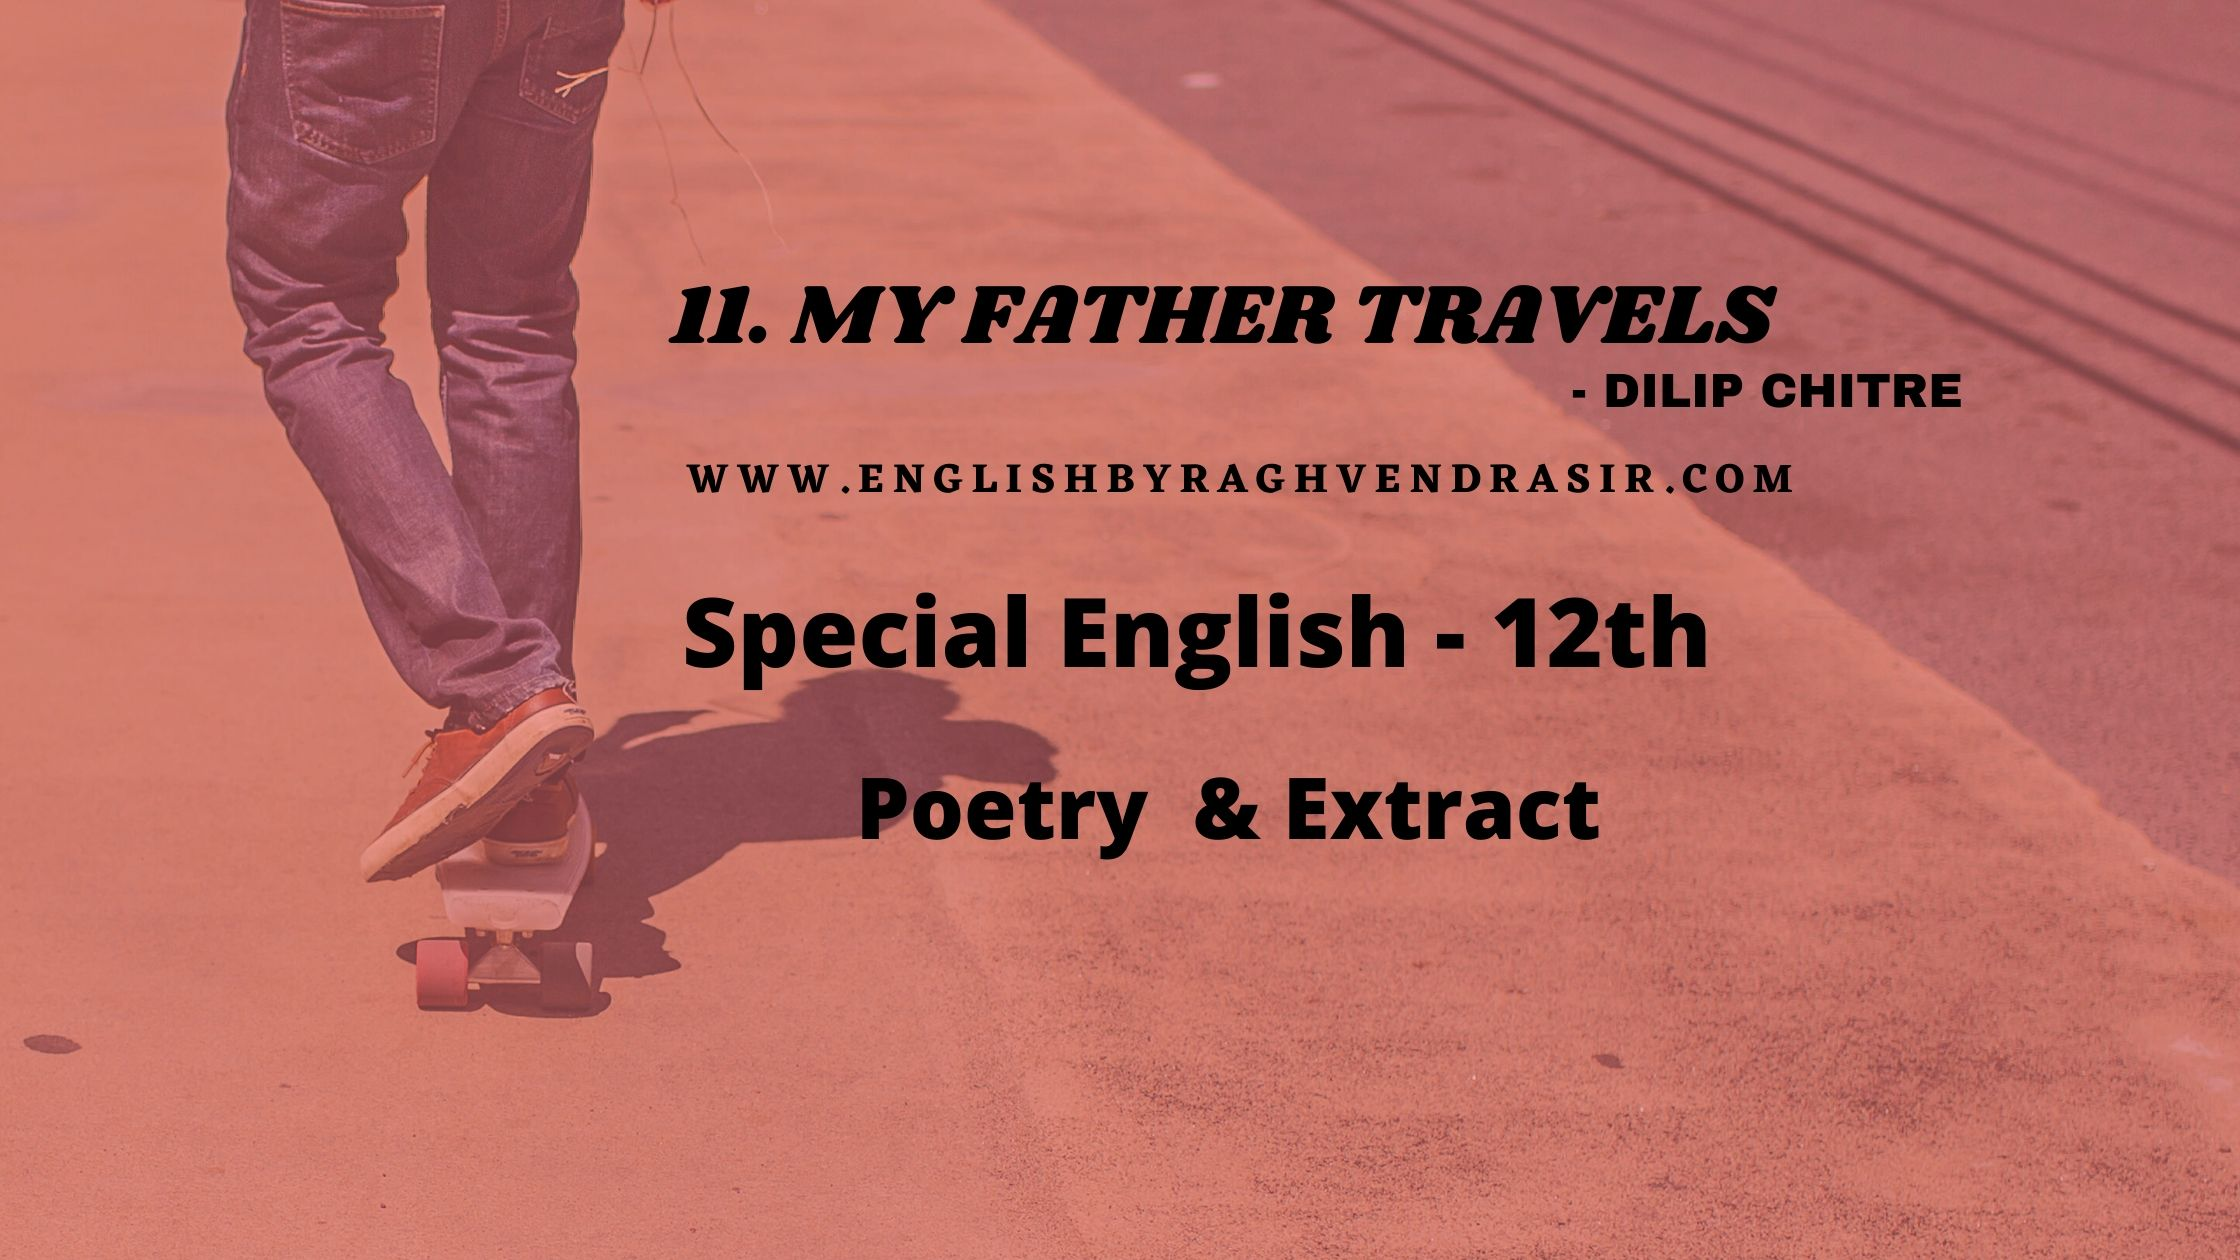 My Father Travels by Dilip chitre